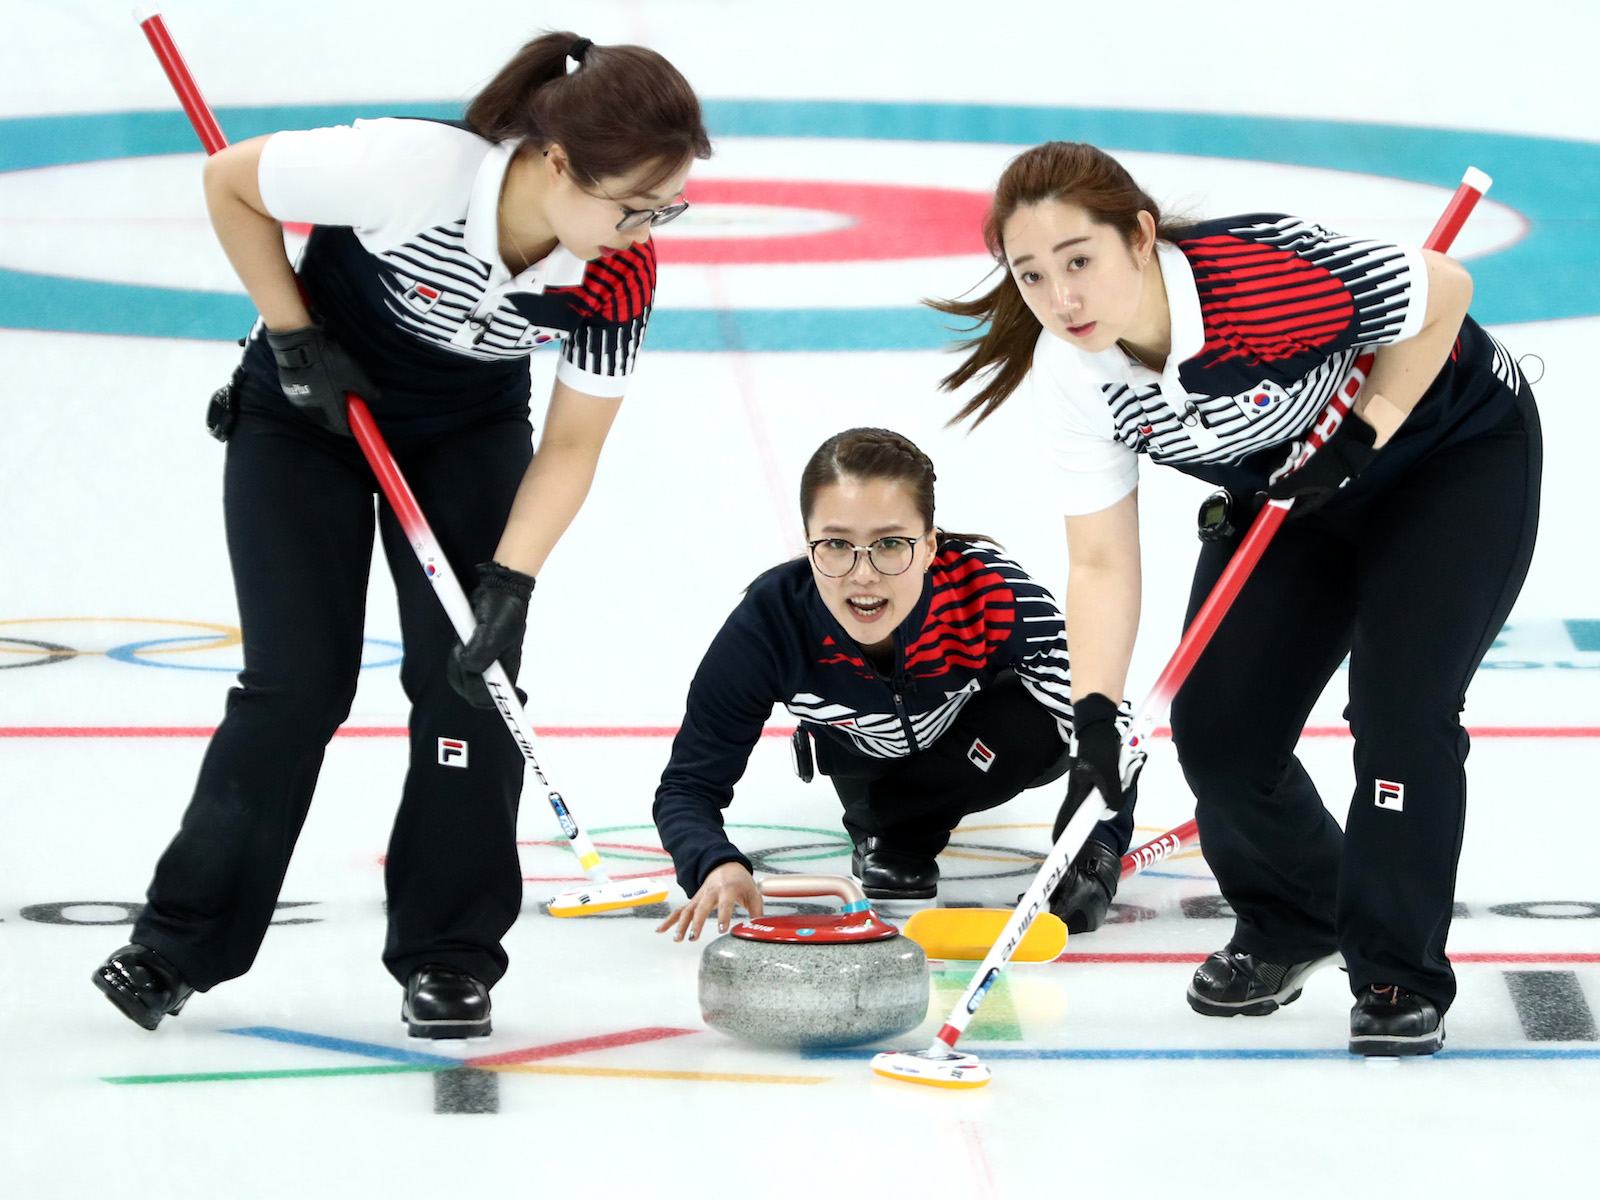 South Korea women's curling